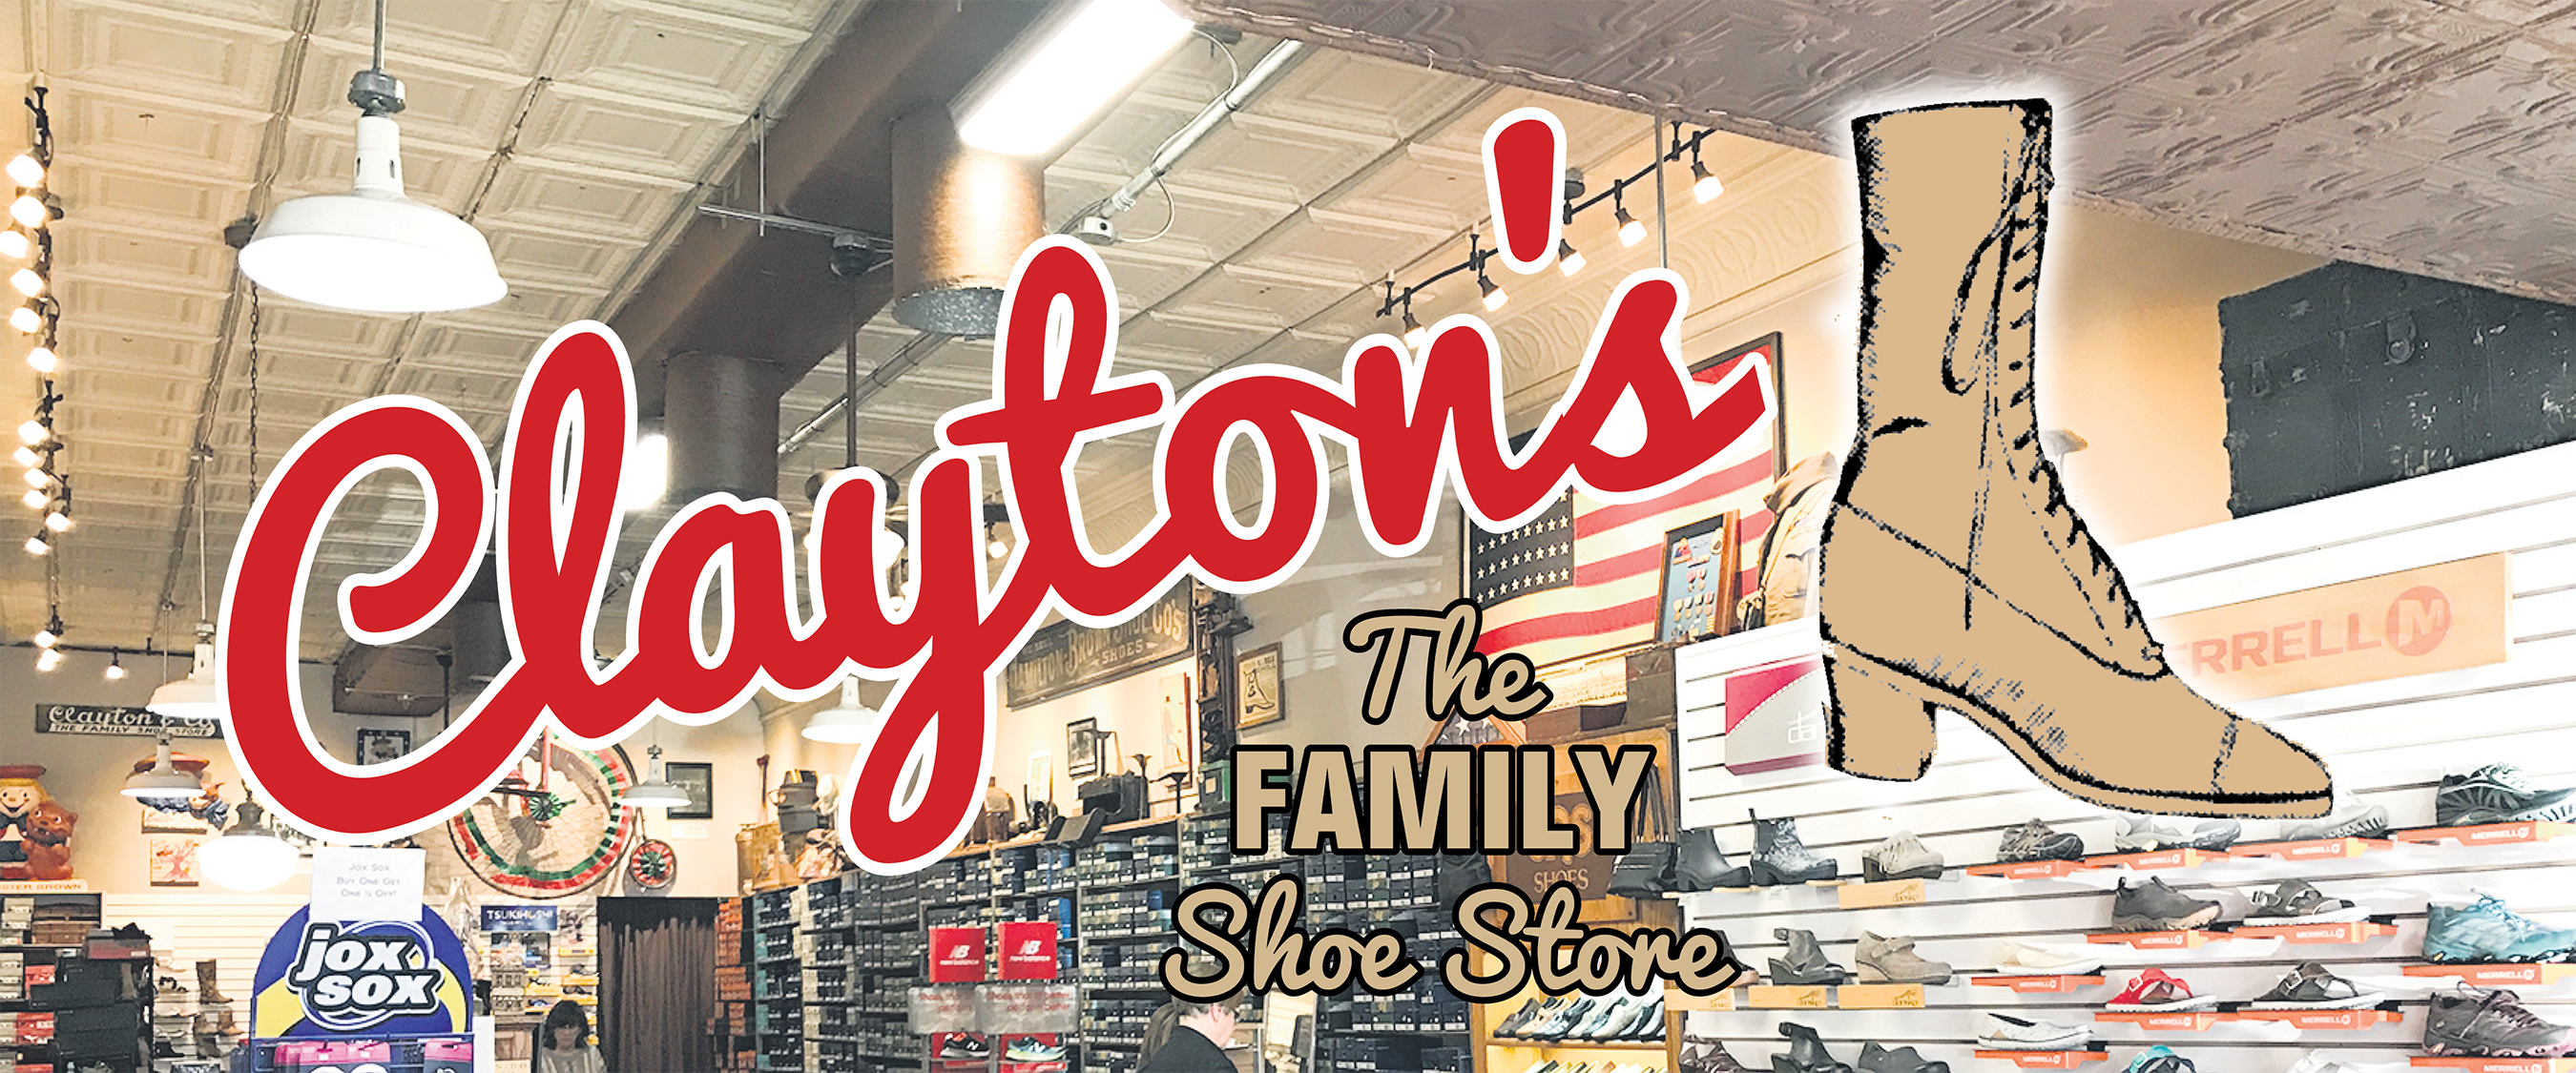 Clayton's Shoe Store